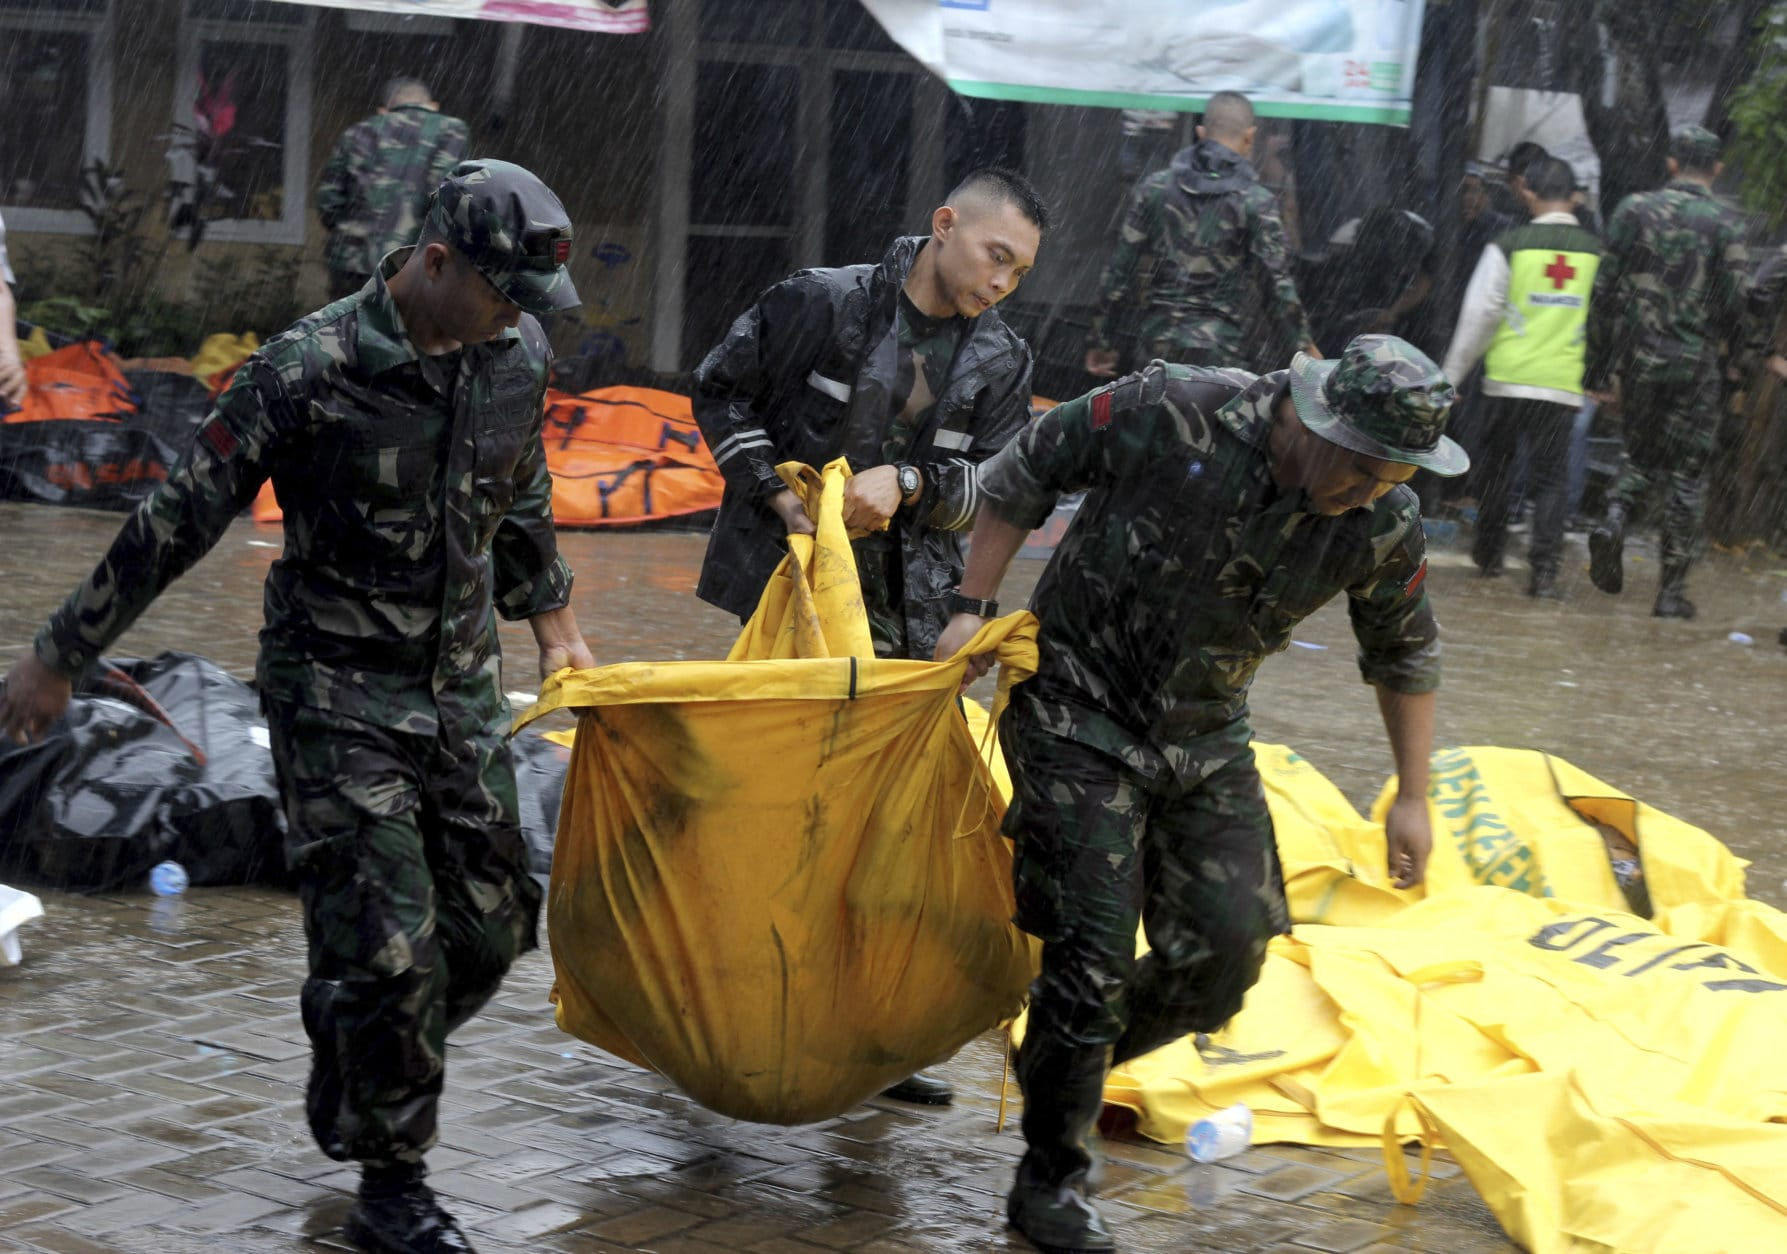 Indonesian soldiers carry a body bag containing the body of a tsunami victim, in Carita, Indonesia, Sunday, Dec. 23, 2018. The tsunami occurred after the eruption of a volcano around Indonesia's Sunda Strait during a busy holiday weekend, sending water crashing ashore and sweeping away hotels, hundreds of houses and people attending a beach concert. (AP Photo)